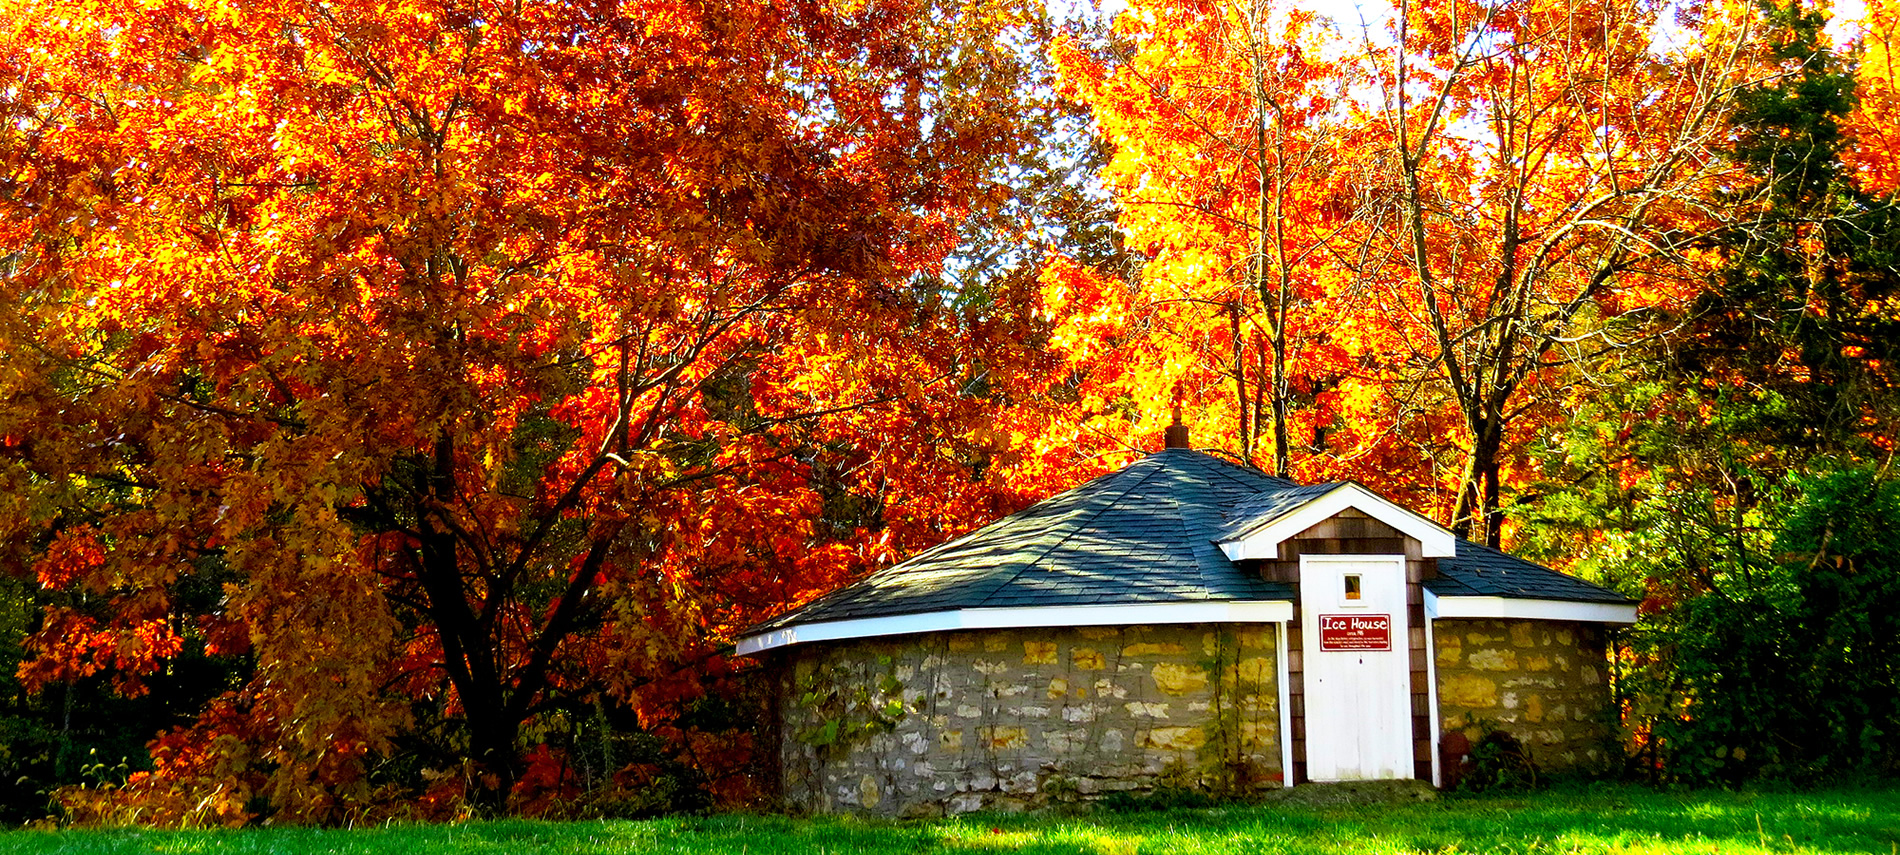 A squat brown stone building with a white door in front of trees with brilliant red and yellow leaves